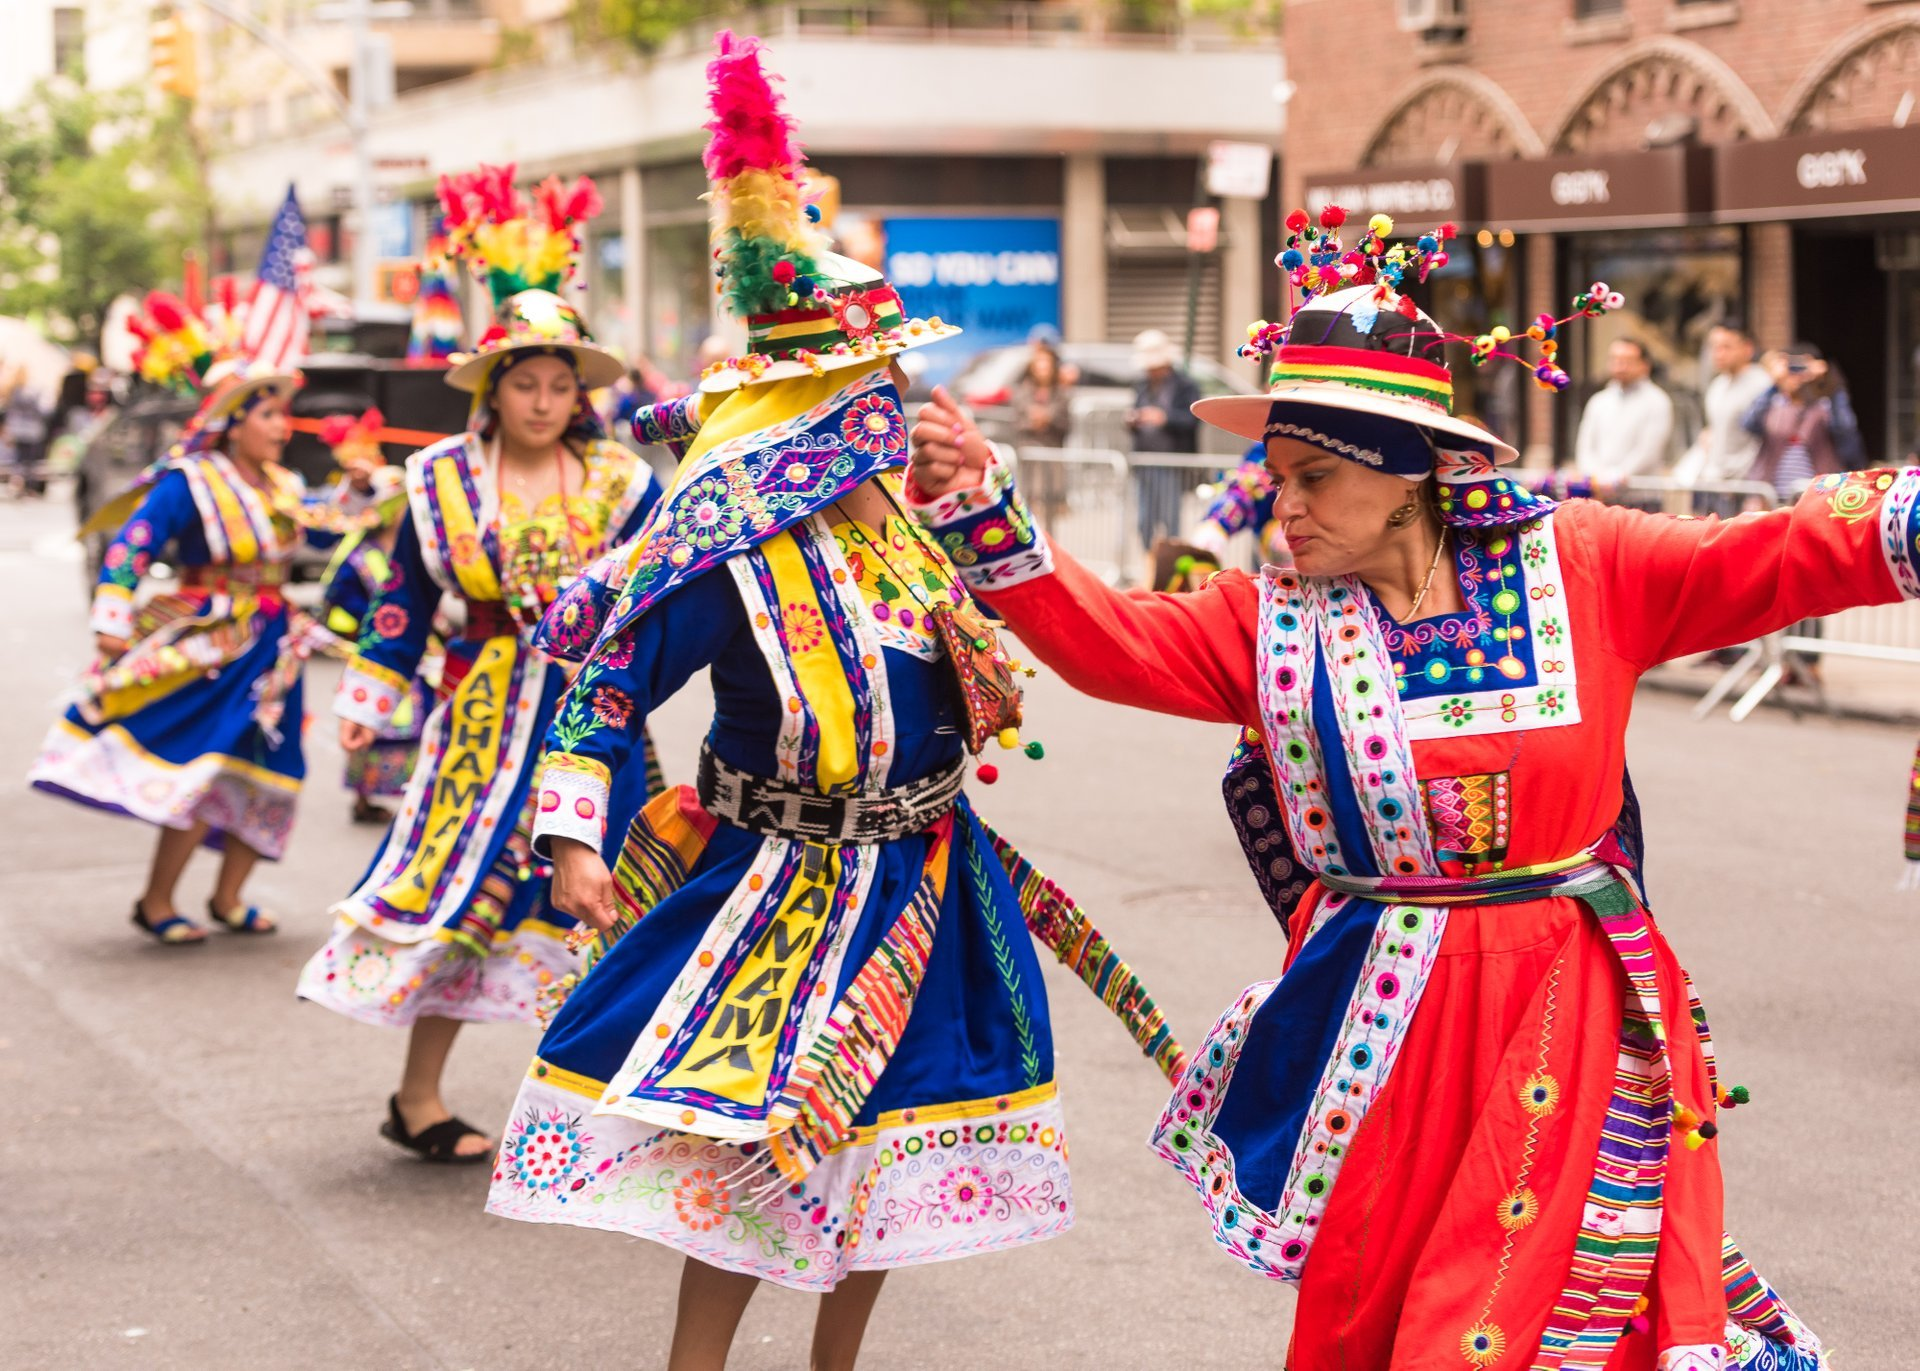 Best time to see Dance Parade & Festival in New York 2020